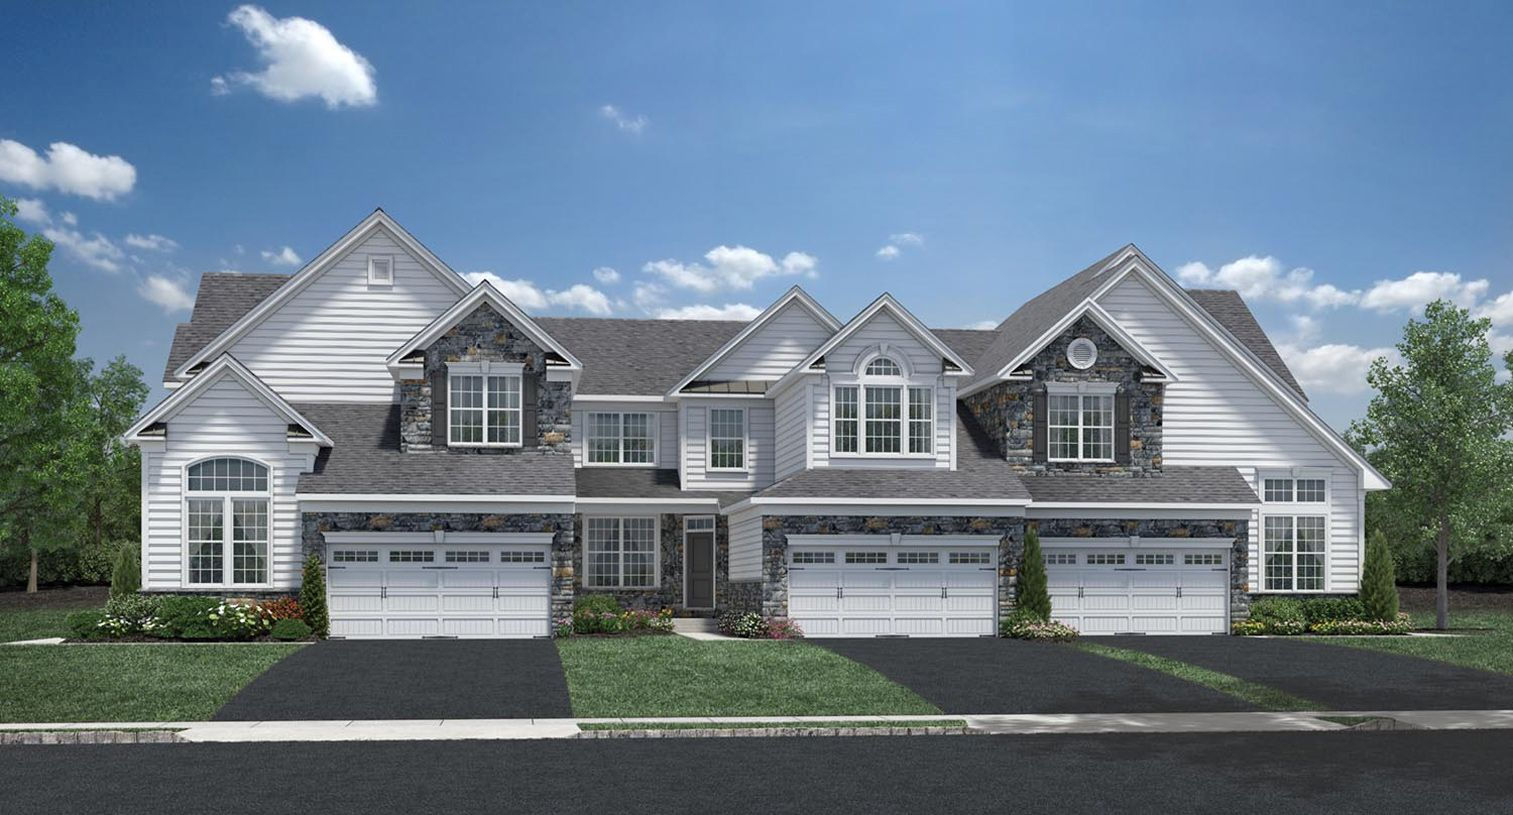 Multi Family Homes For Sale In Delaware County Pa